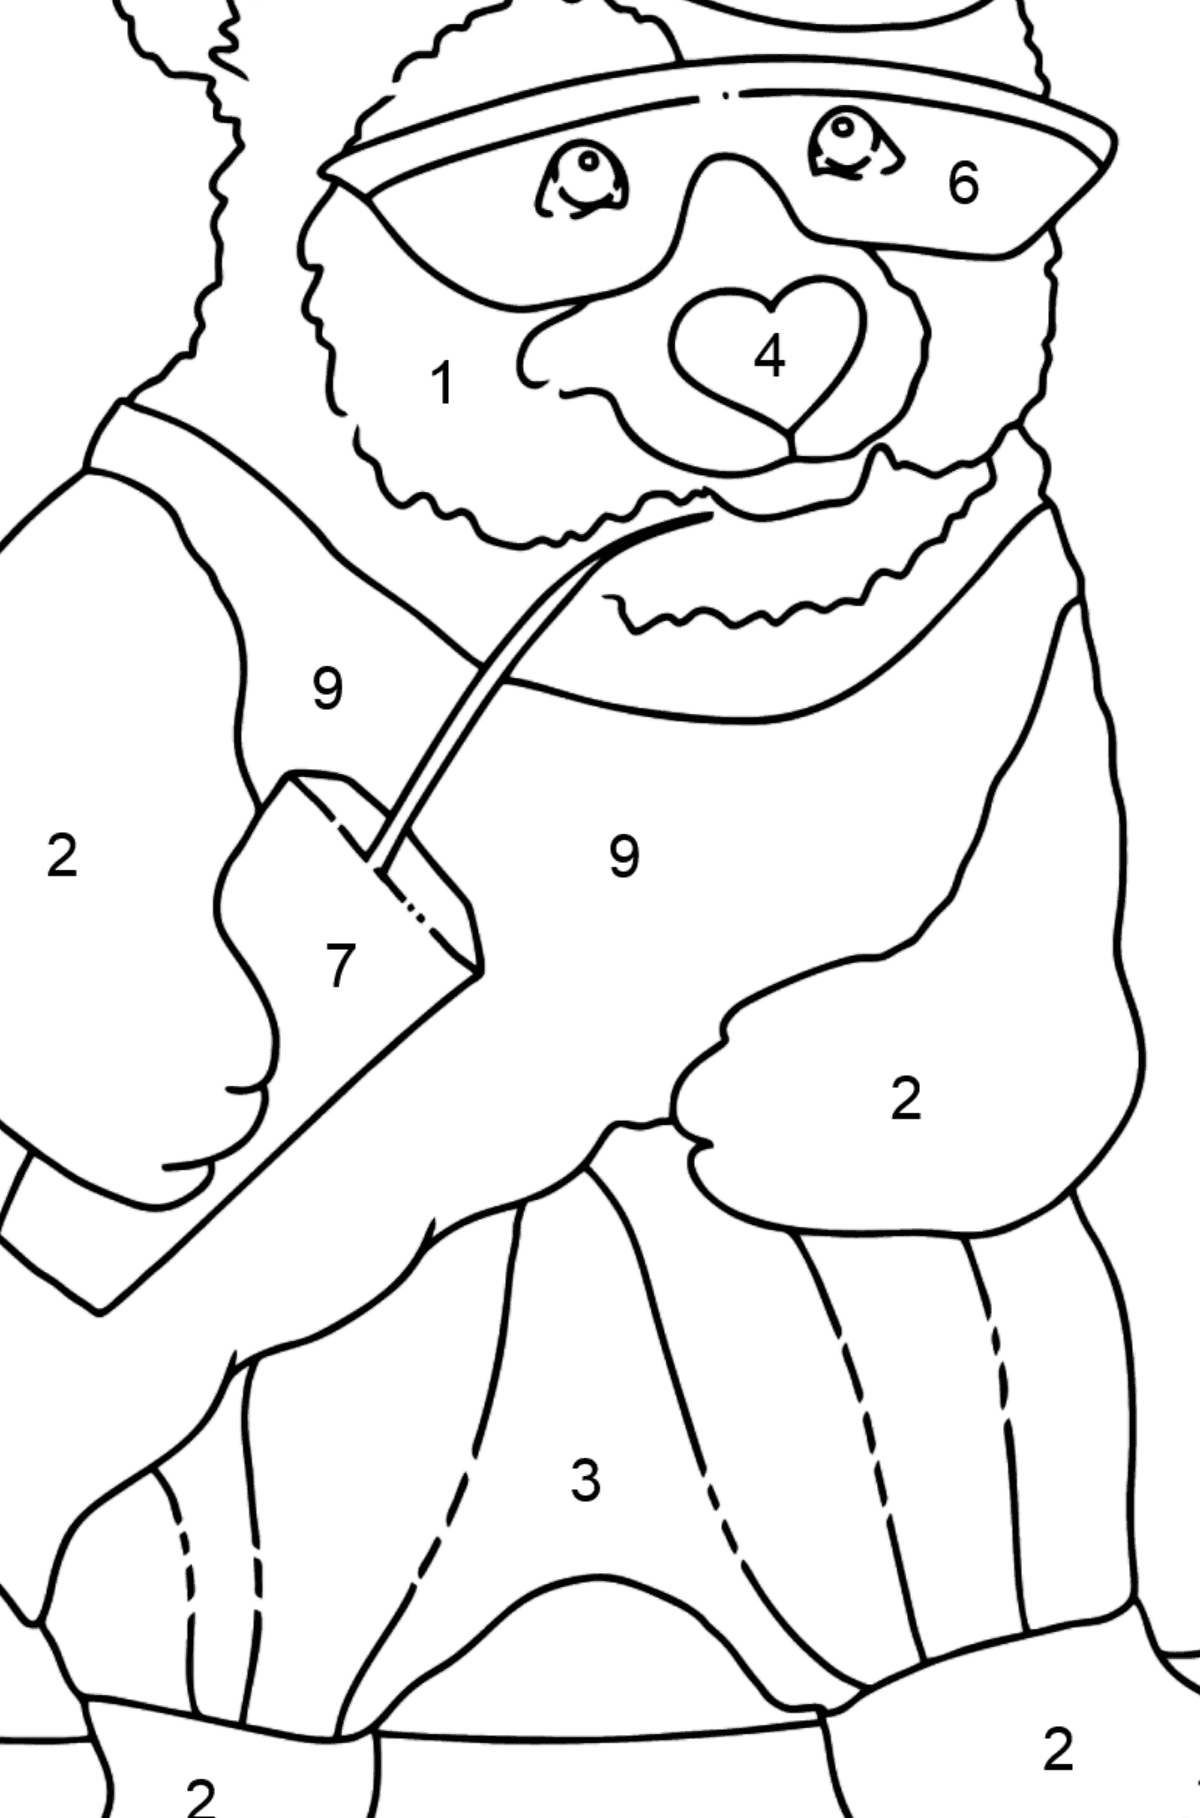 Coloring Page - A Panda on a Skateboard - Coloring by Numbers for Kids